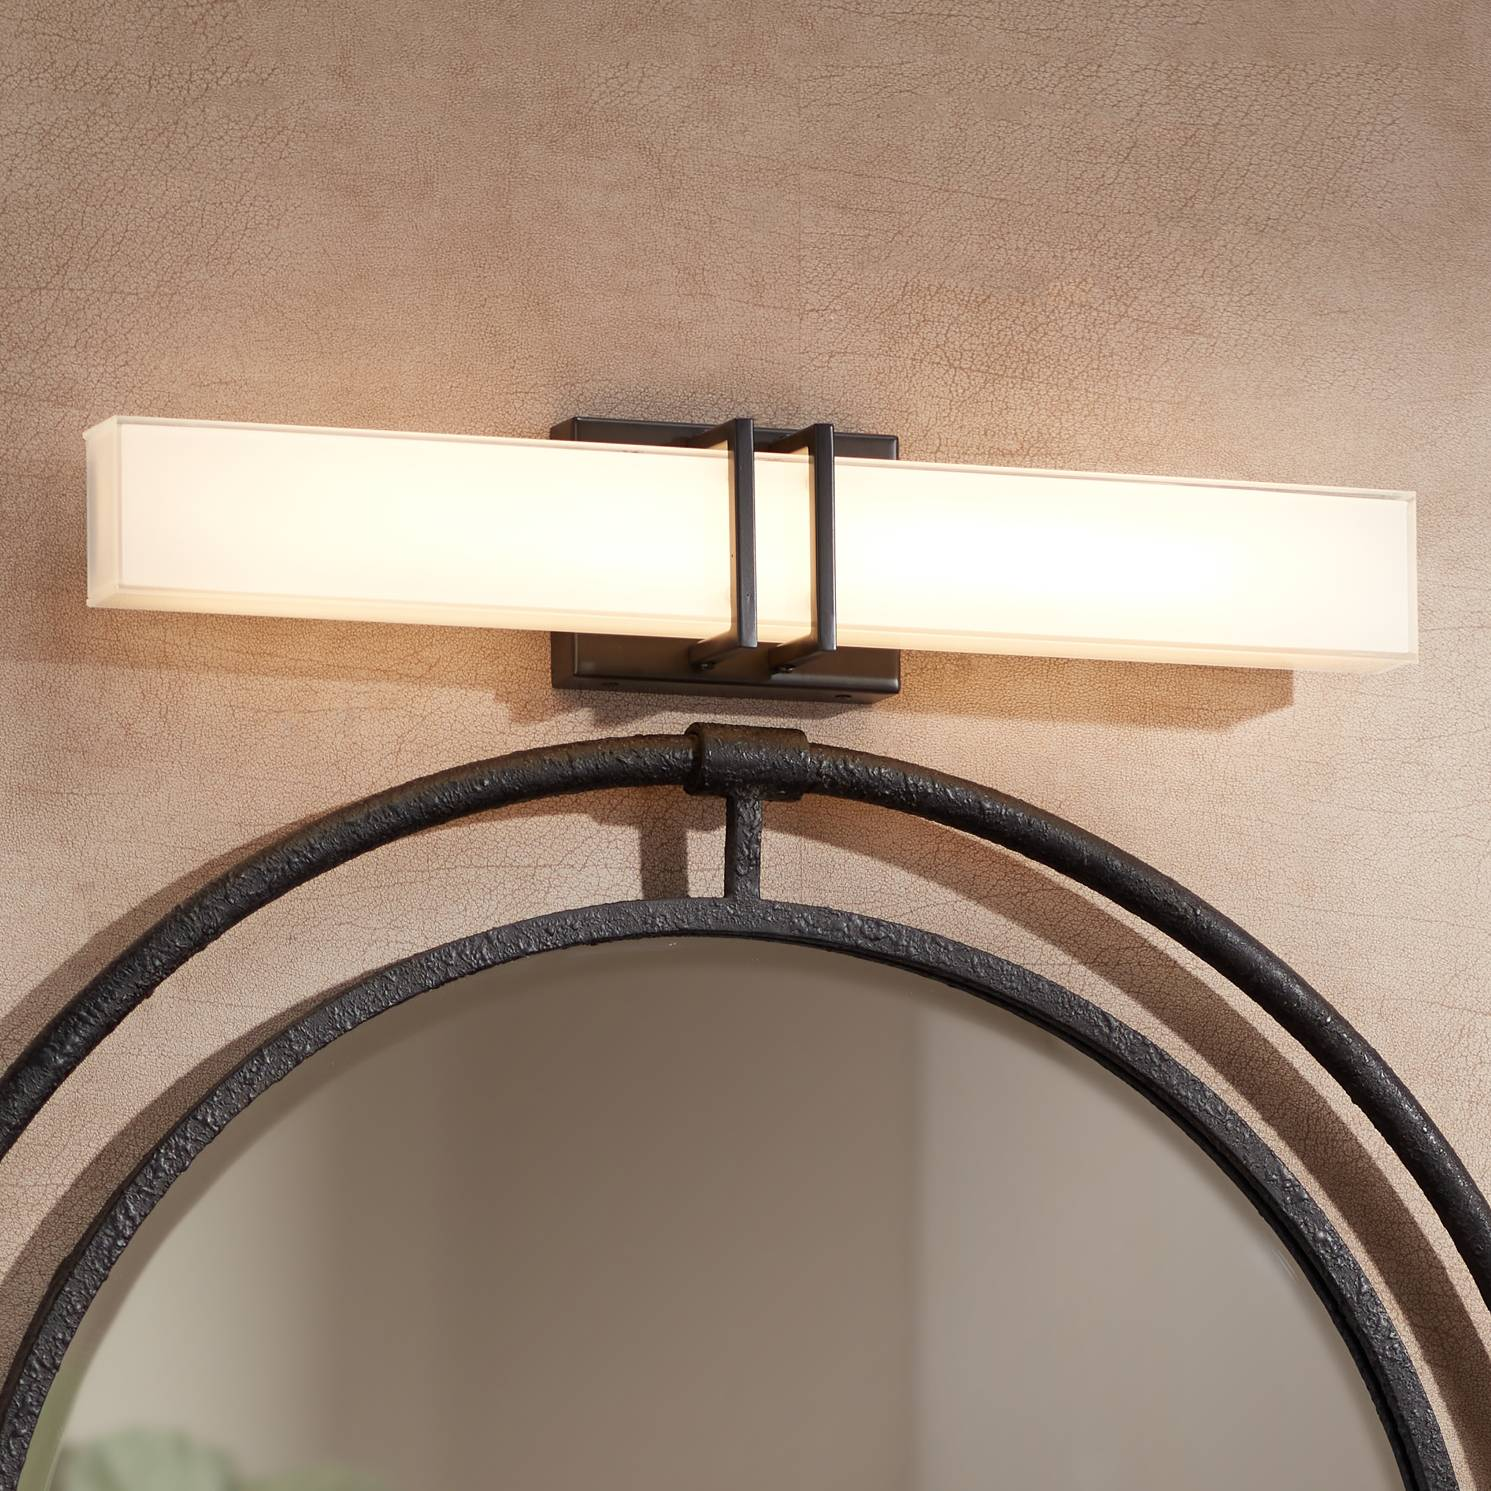 Incredible Details About Possini Euro Exeter 24W Bronze Led Bathroom Vanity Light Interior Design Ideas Clesiryabchikinfo